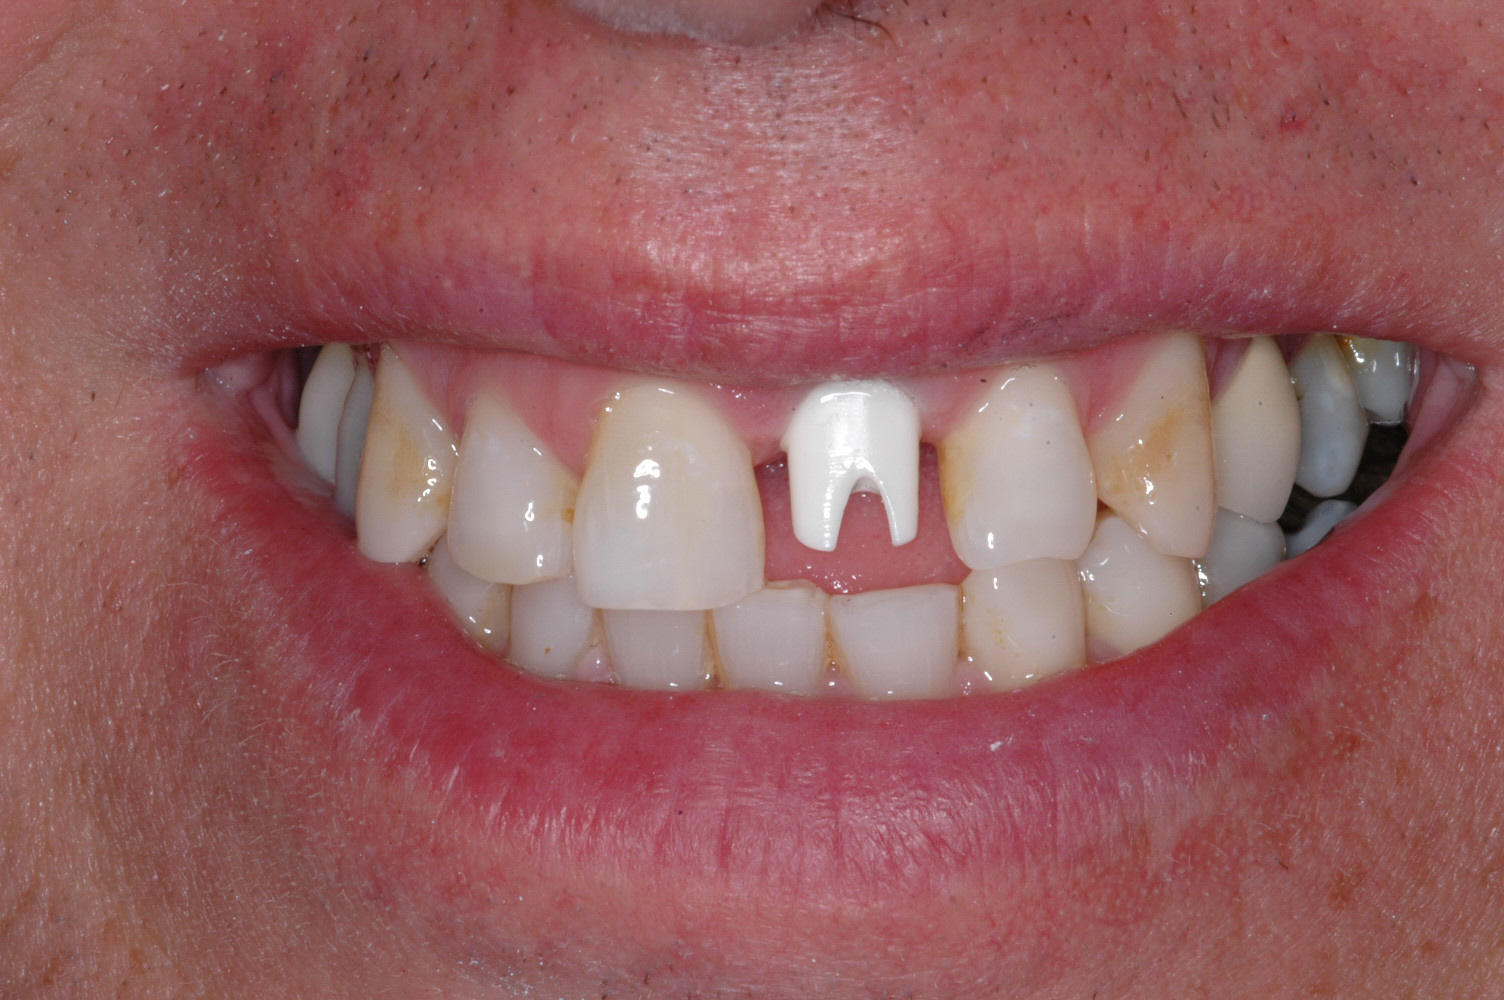 This is a custom zirconium abutment that will support the crown. Zirconium has excellent strength and there will be no metal that is exposed in the final restoration